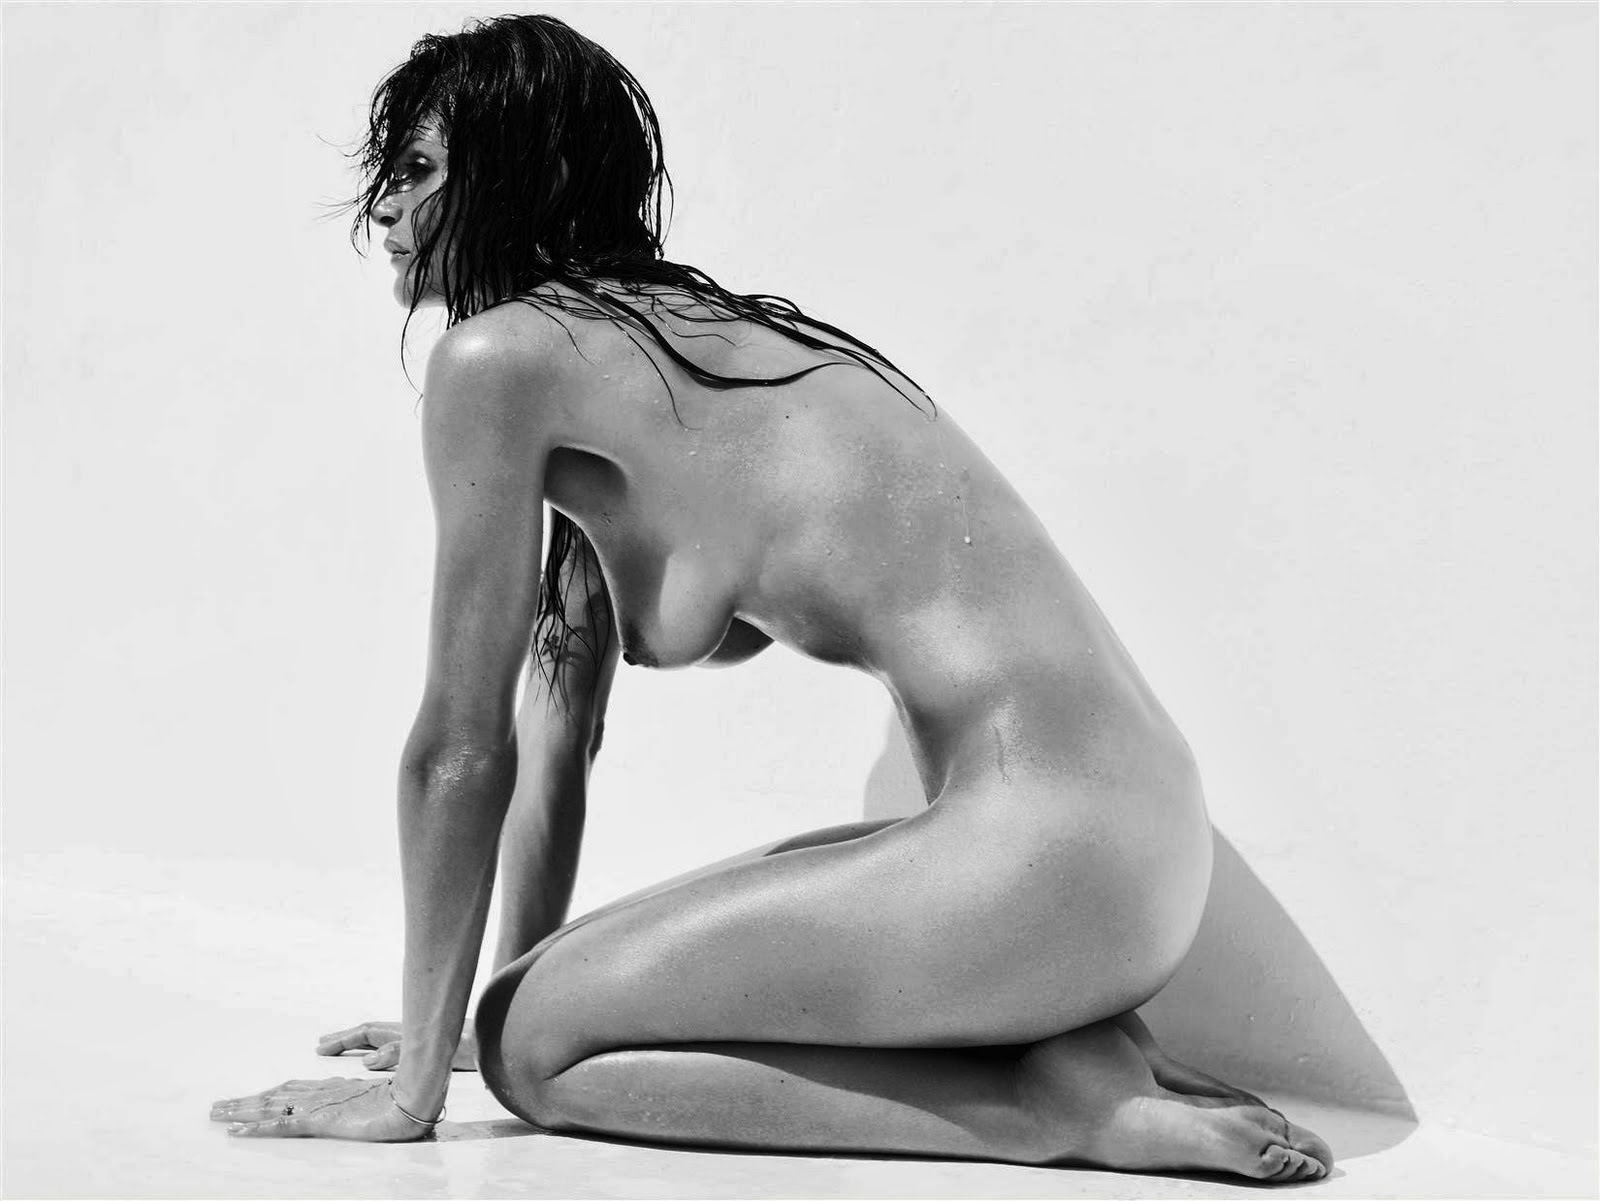 Helena+Christensen+nude+naked+total+full+frontal+nue+desnuda+nackt+02 - TOP MODELS NUDE   KATE MOSS , ISABELI FONTANA & OTHERS